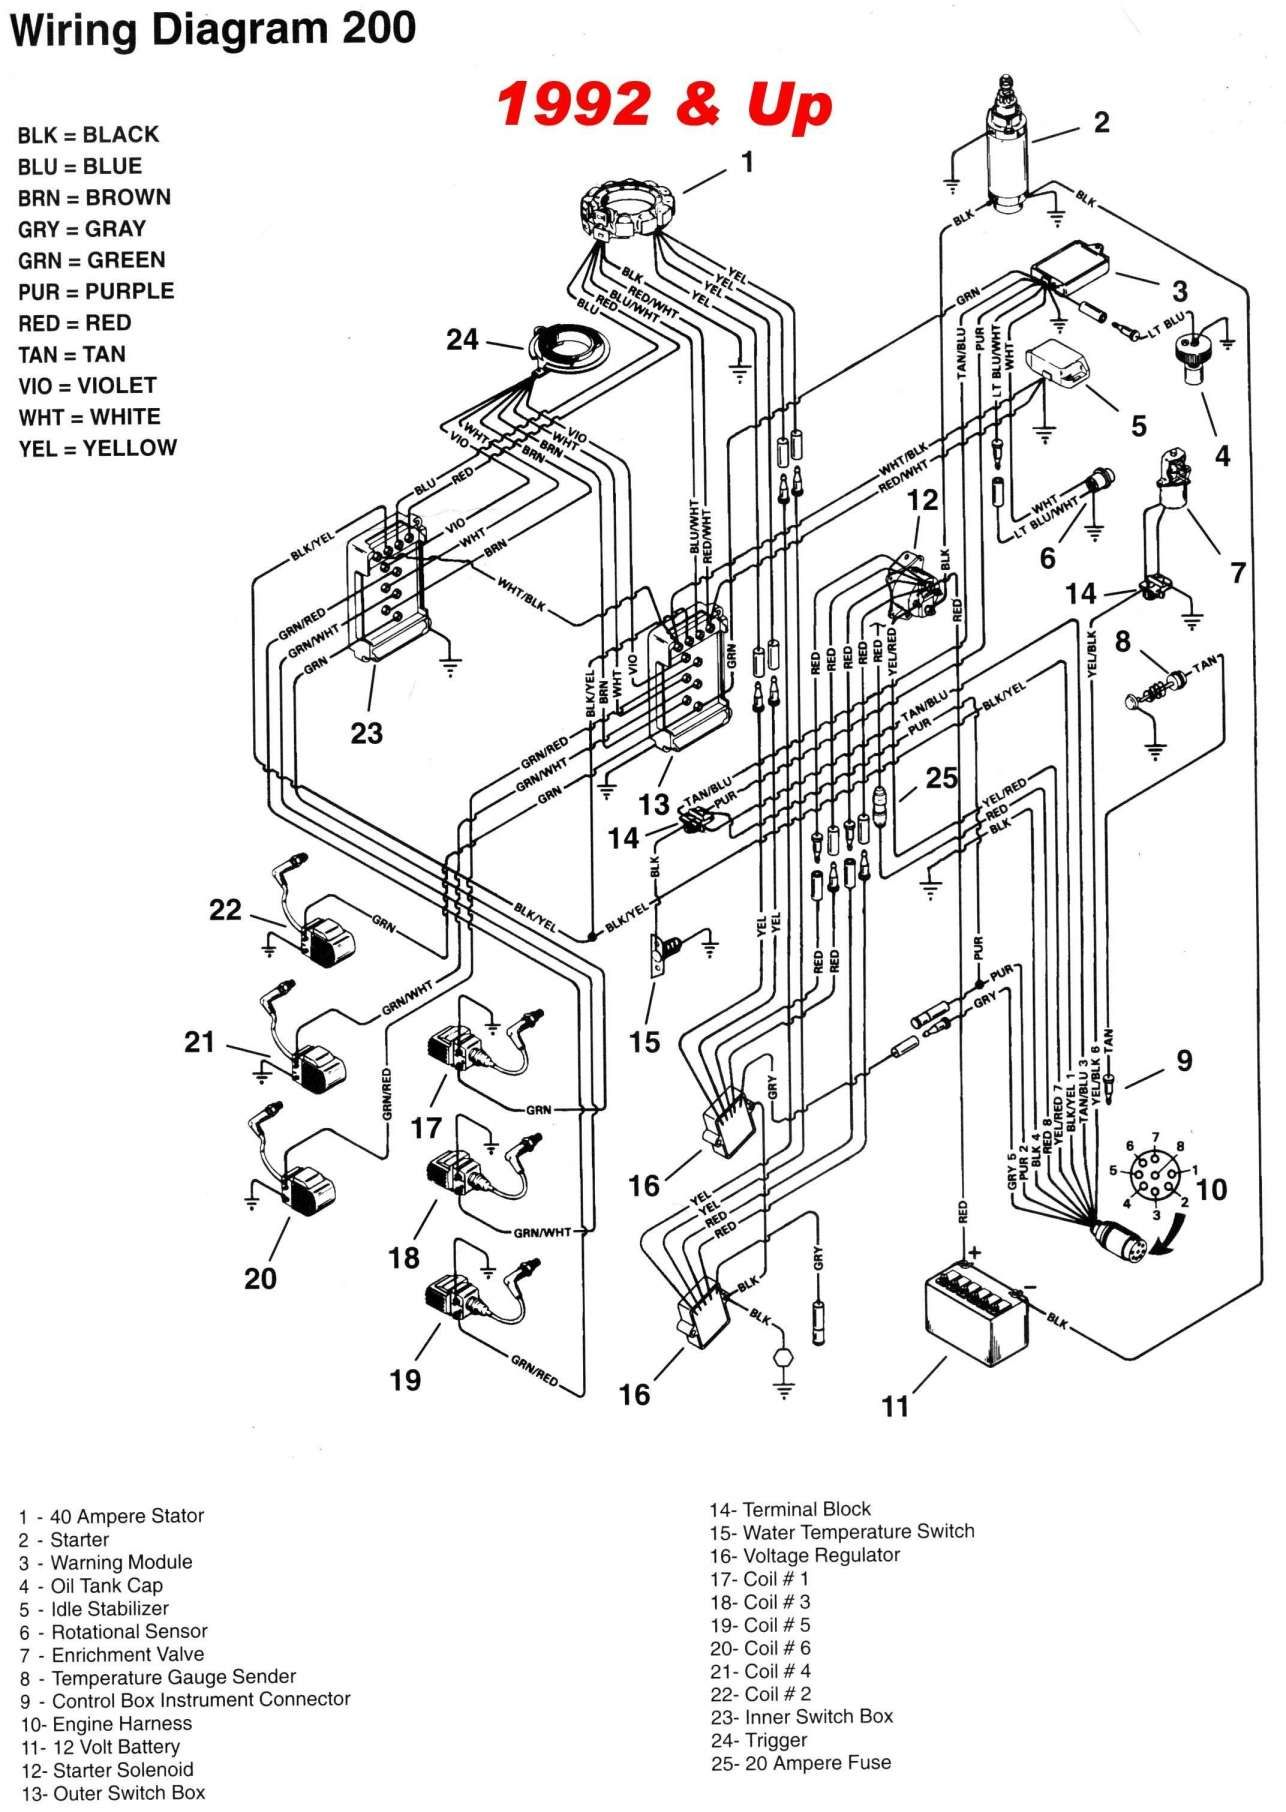 Mercruiser 140 Engine Wiring Diagram And Civic Ignition Wiring Diagram Diagrams Instructions In 2020 Mercury Outboard Diagram Mercury